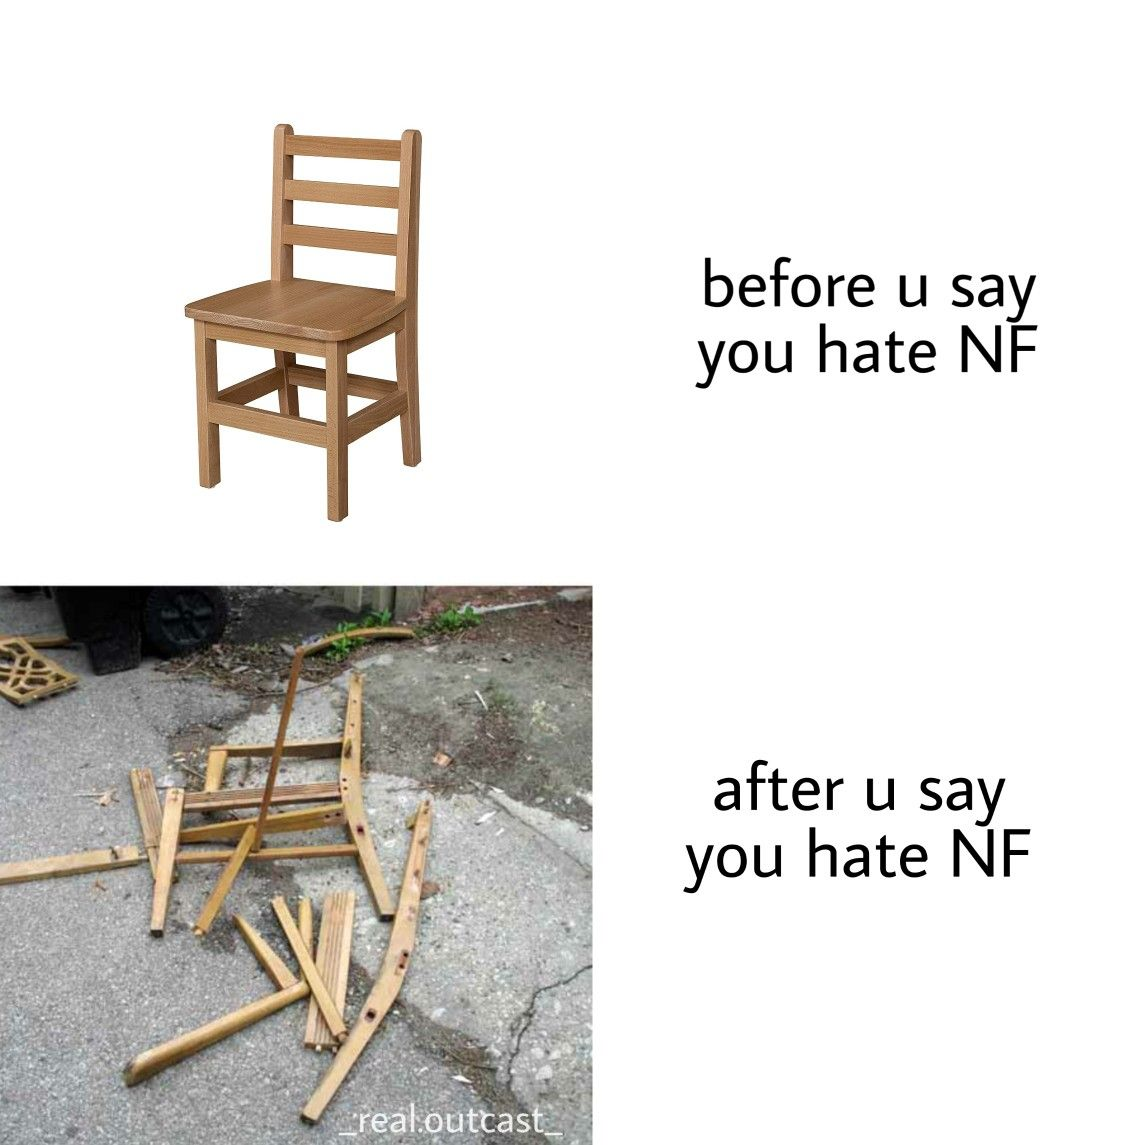 Smash That Chair Nf Meme In 2020 Nf Real Music Nf Quotes Music Memes